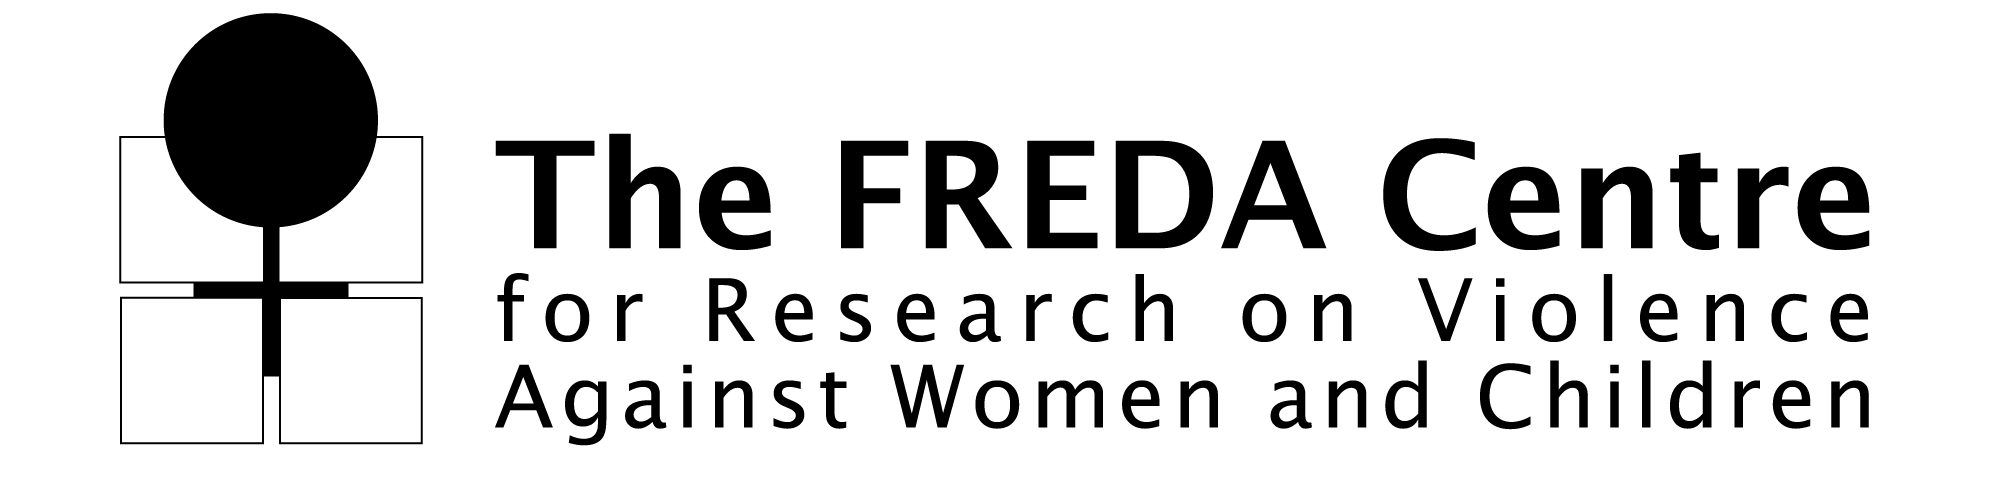 FREDA Centre for Research on Violence Against Women and Children Logo